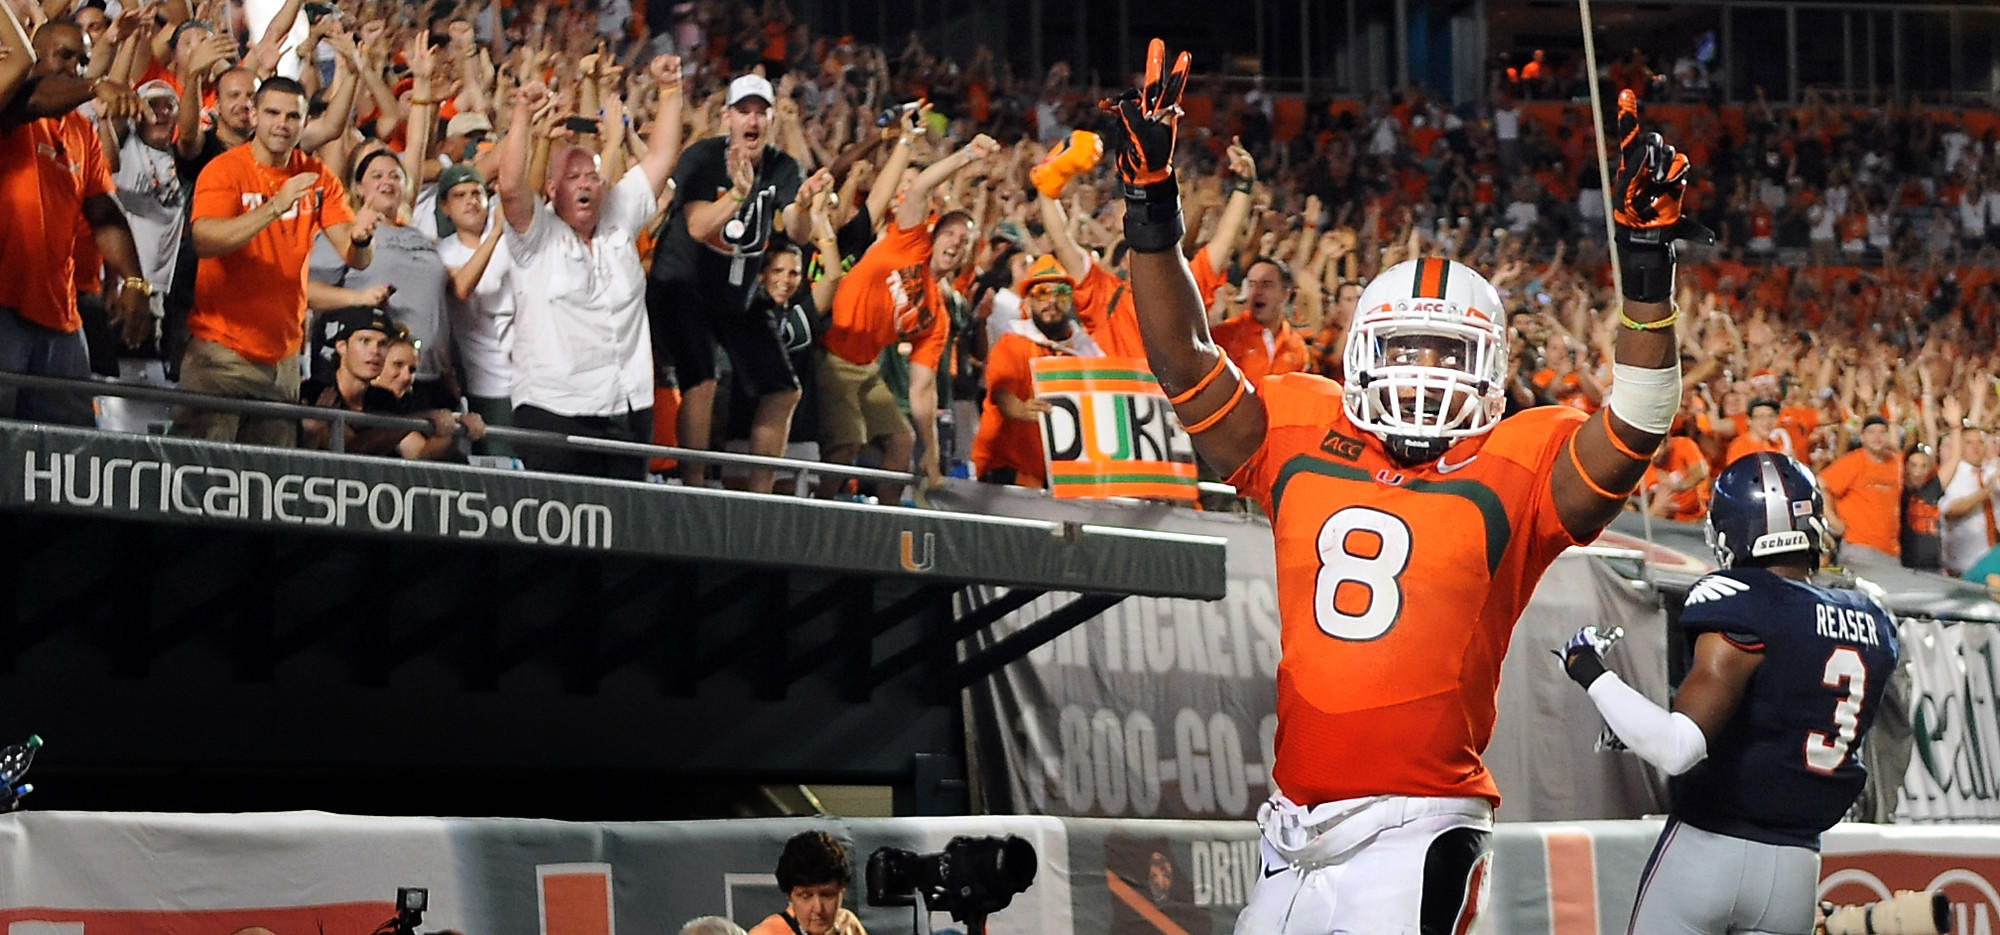 Miami's Duke Johnson celebrates his first half touchdown as Canes fans go crazy.